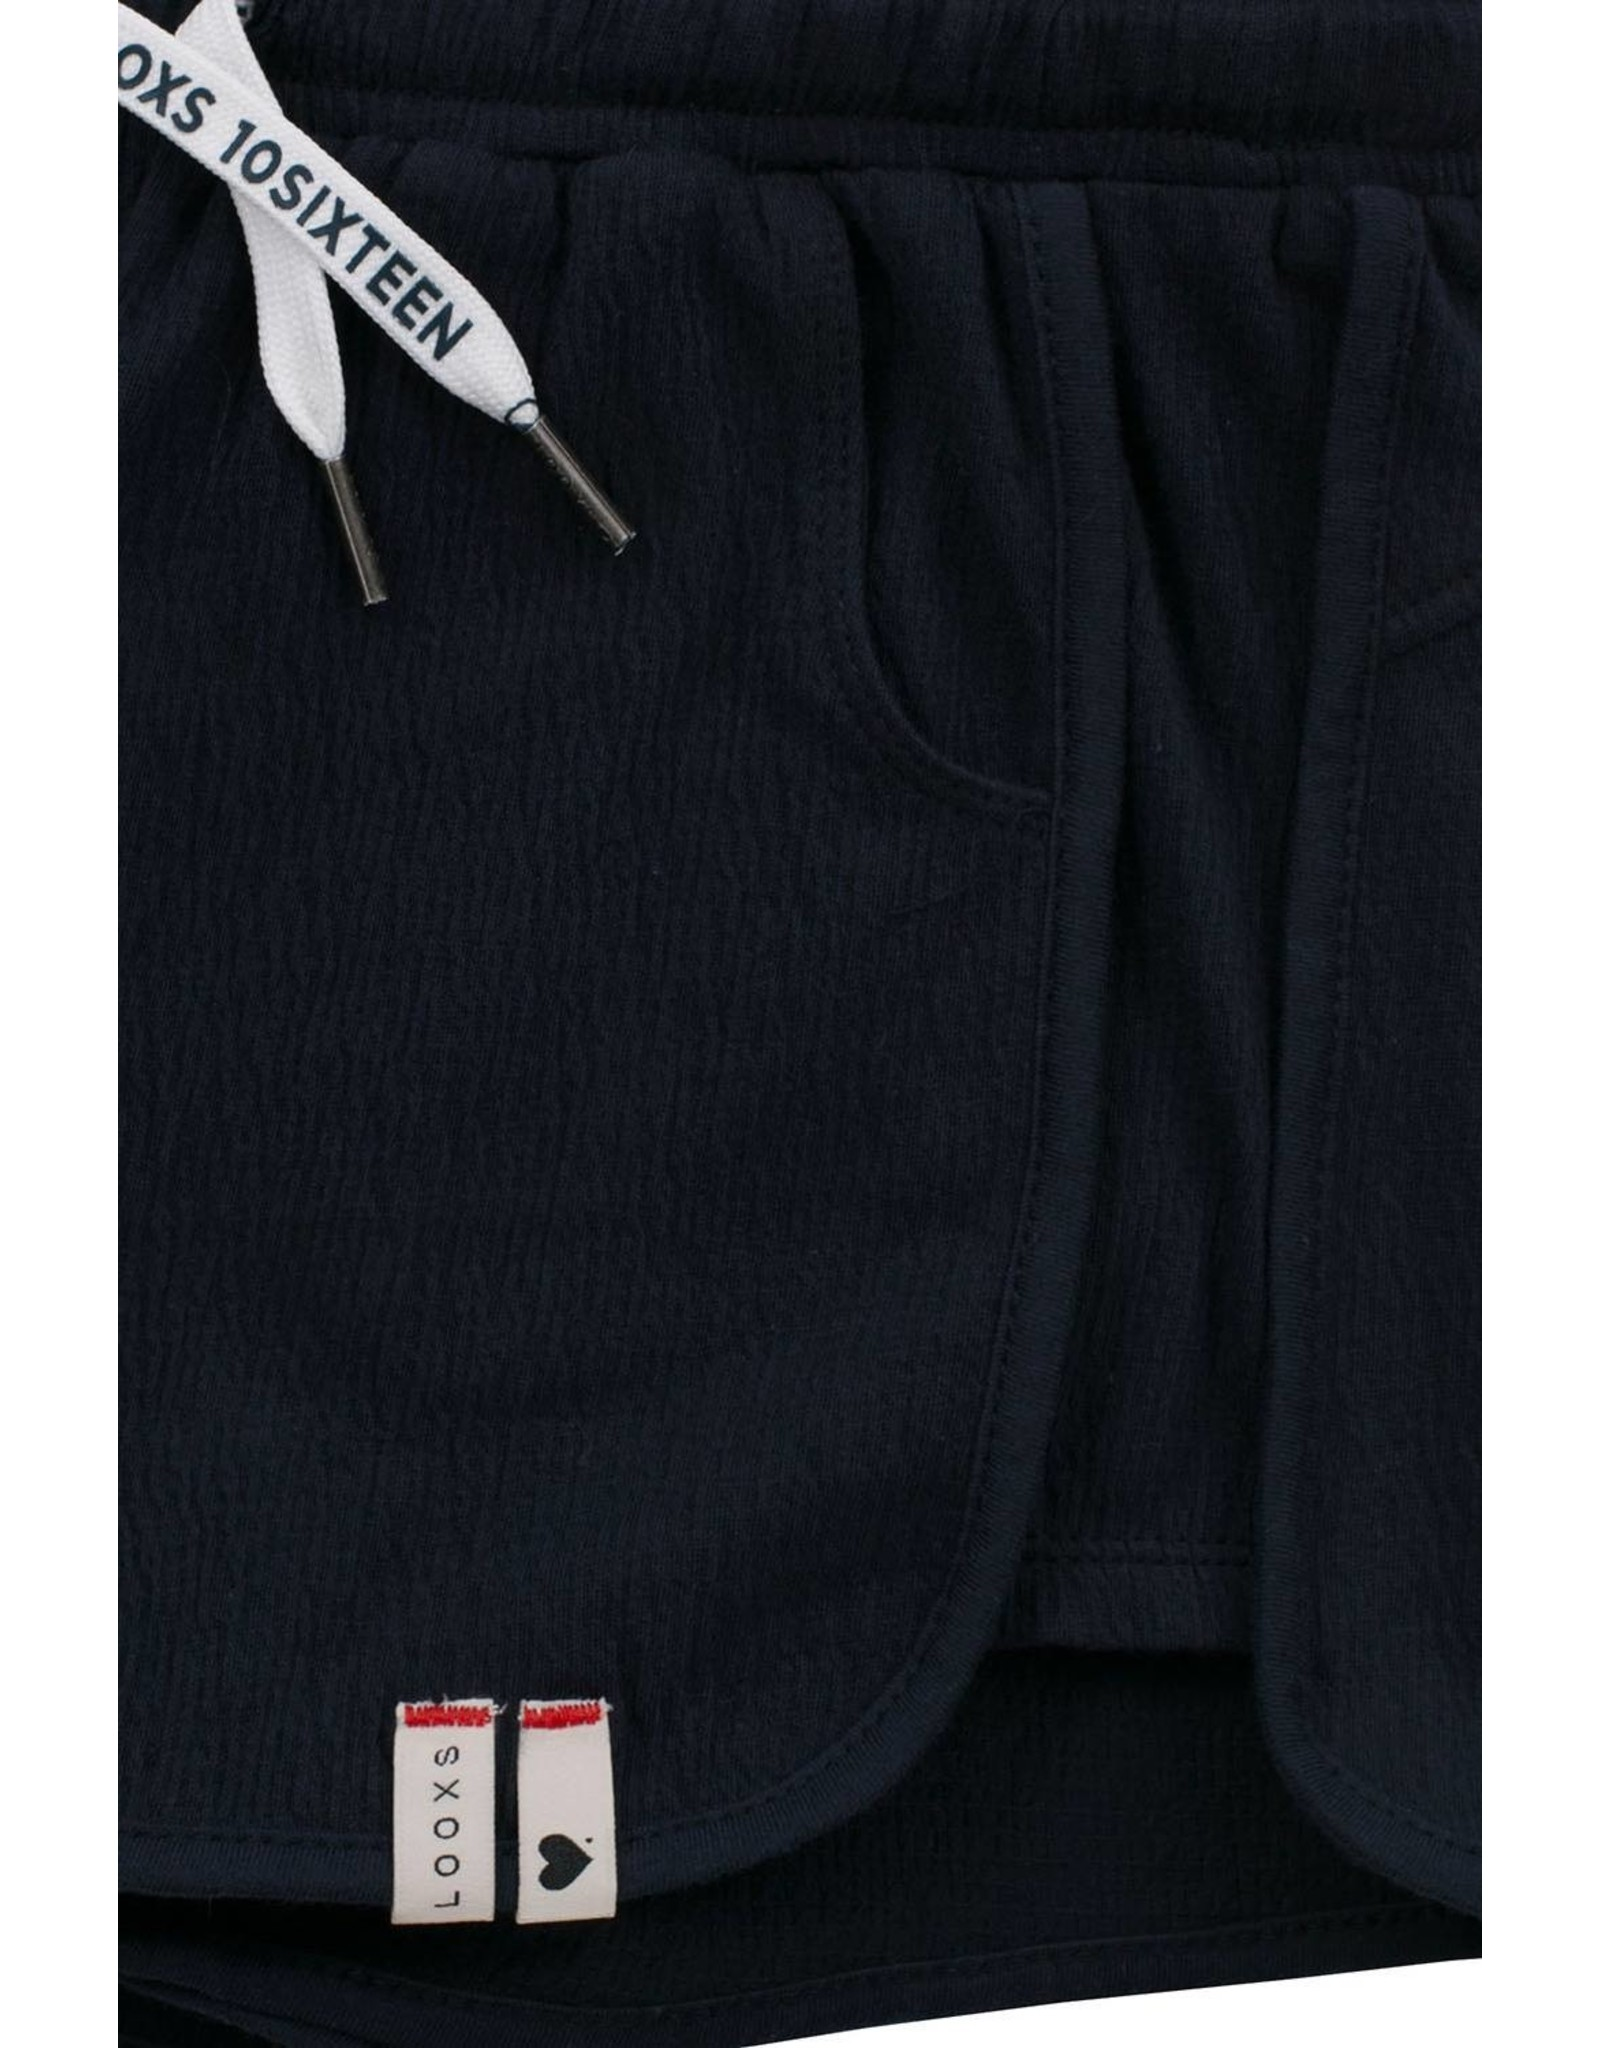 LOOXS 10sixteen Crinkle jersey shorts OXFORD BLUE